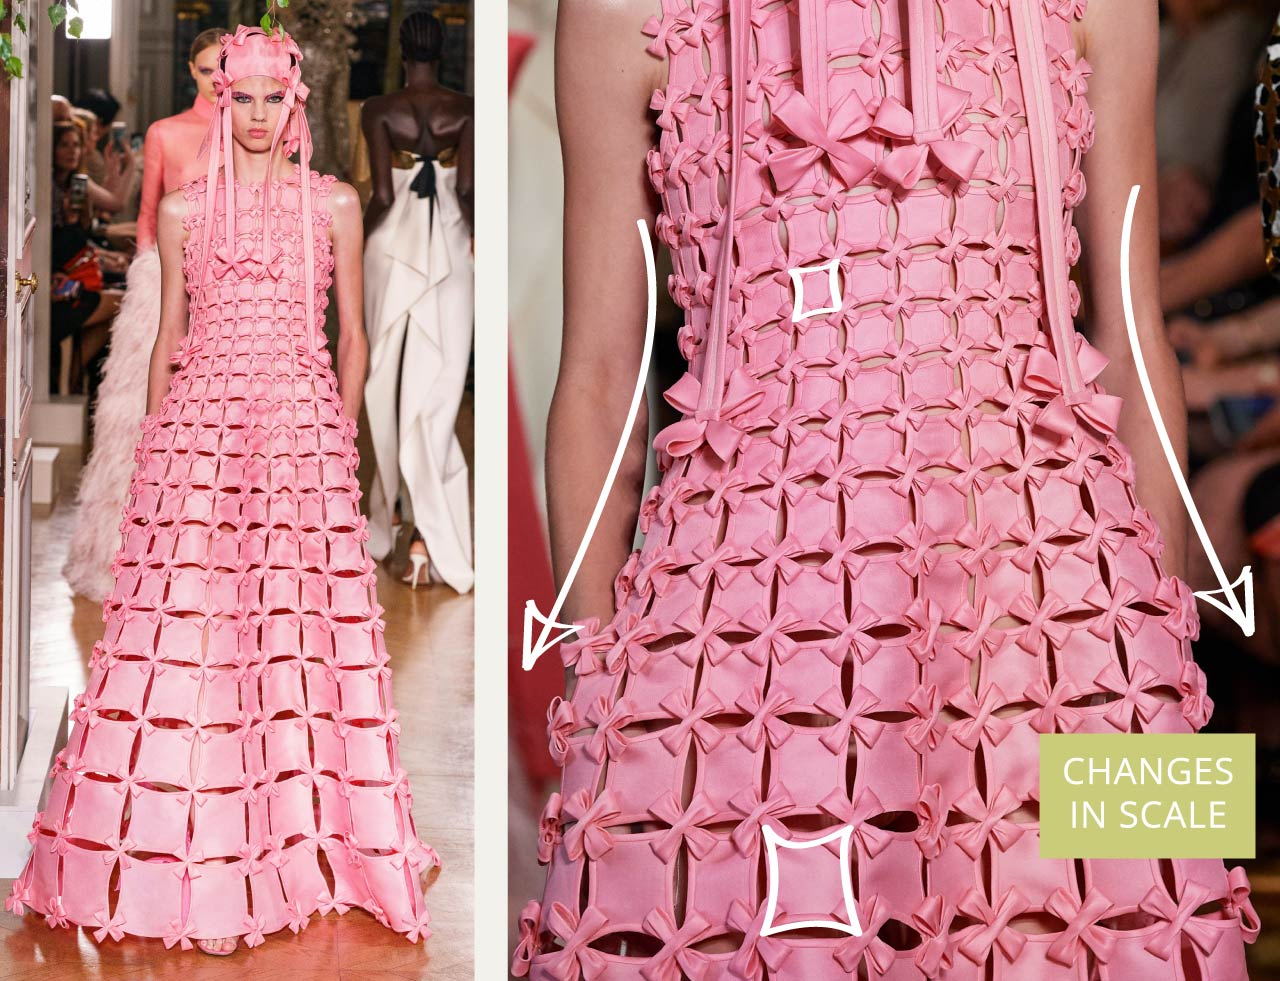 Glossary: Bias Binding at Valentino Couture AW19. Piece vary in scale down pink dress.